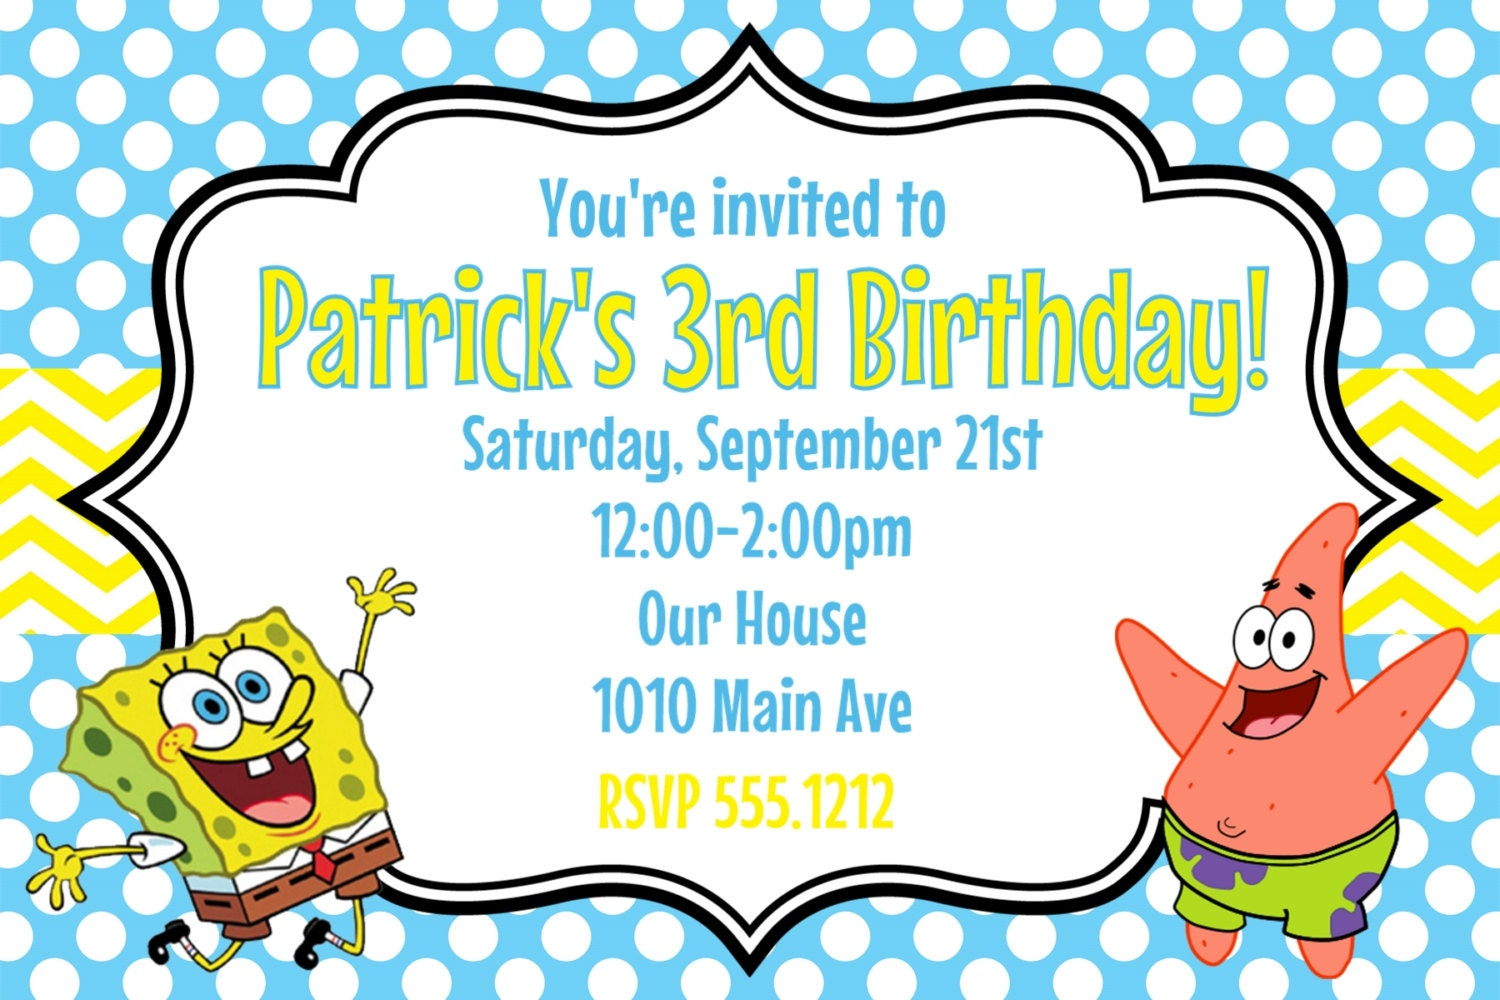 spongebob squarepants birthday party invitation printable x, party invitations